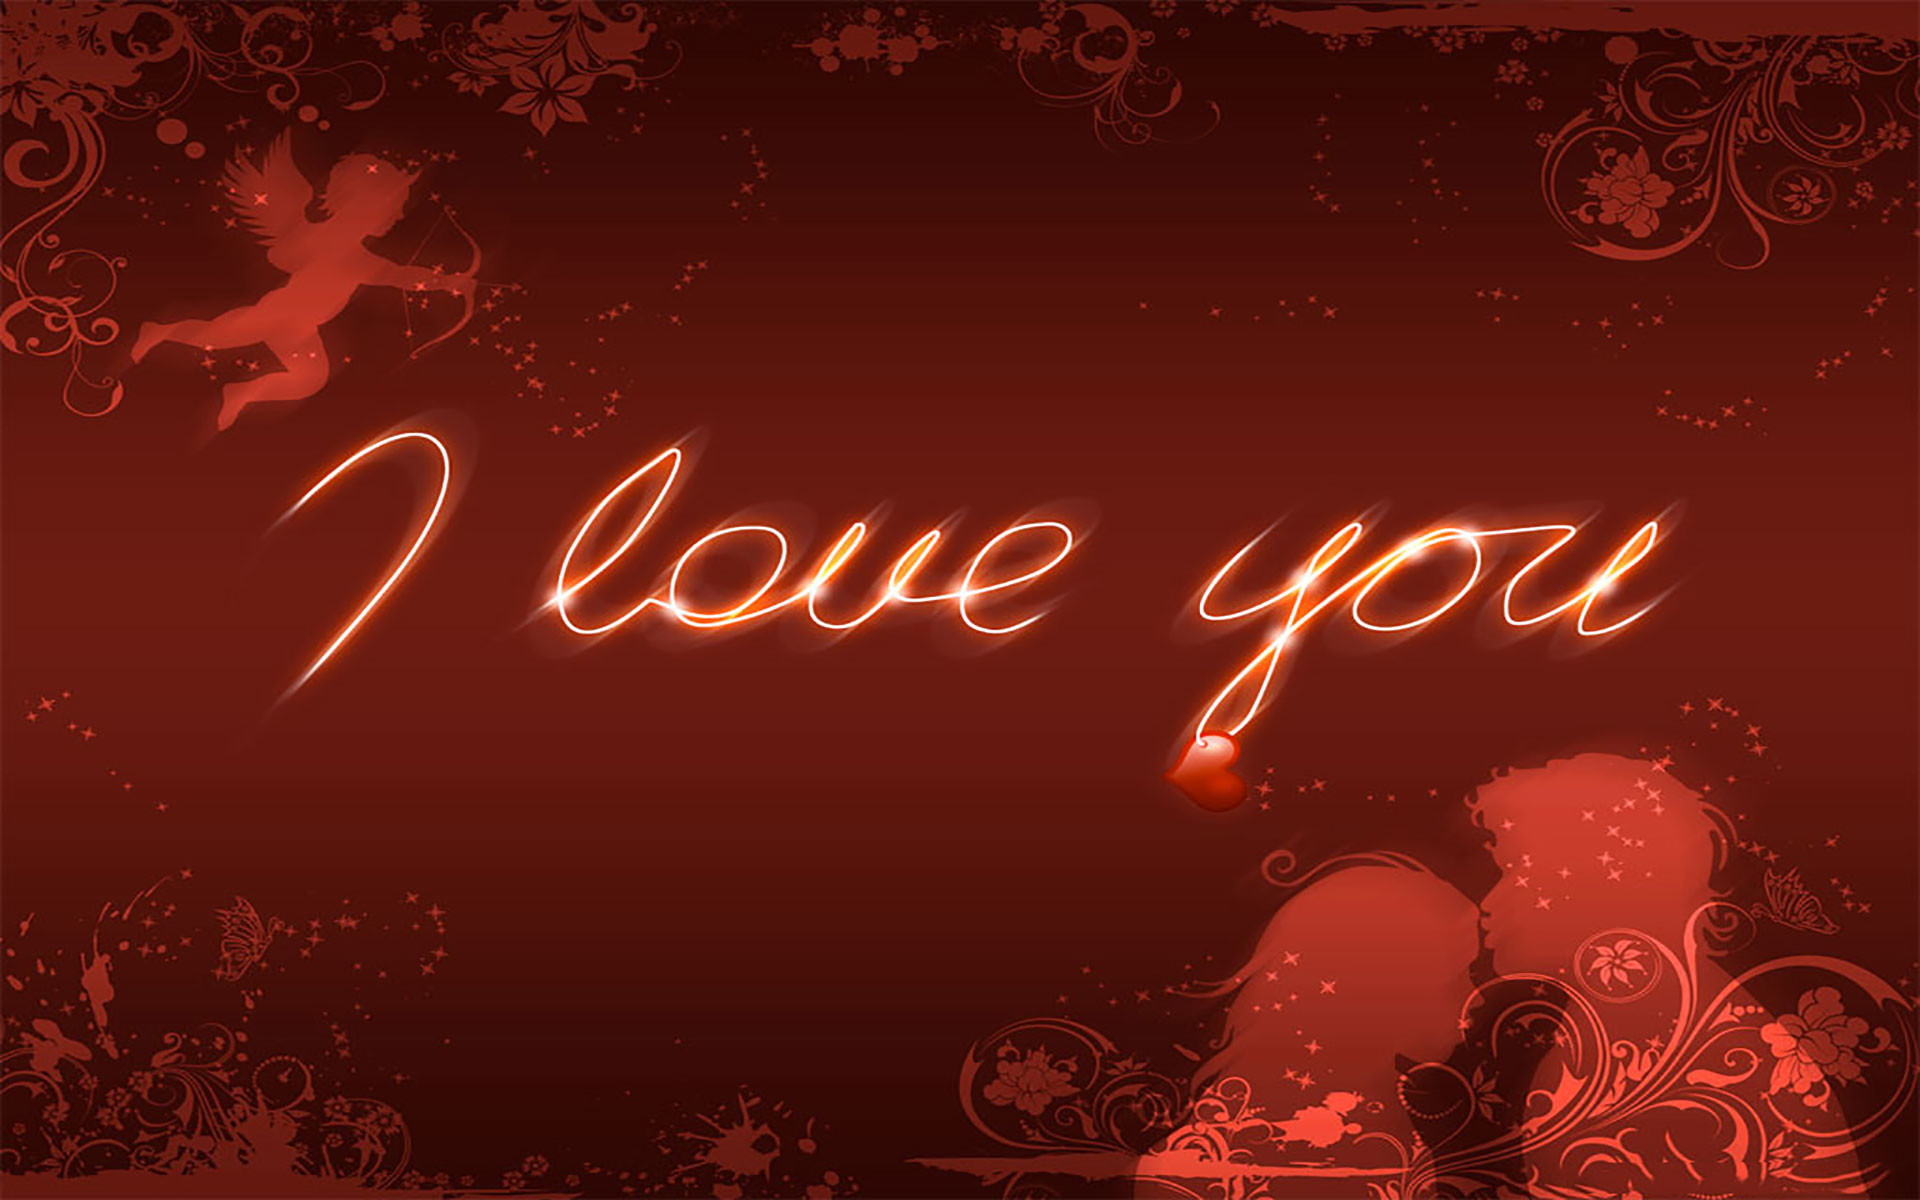 1920x1200 images of love you